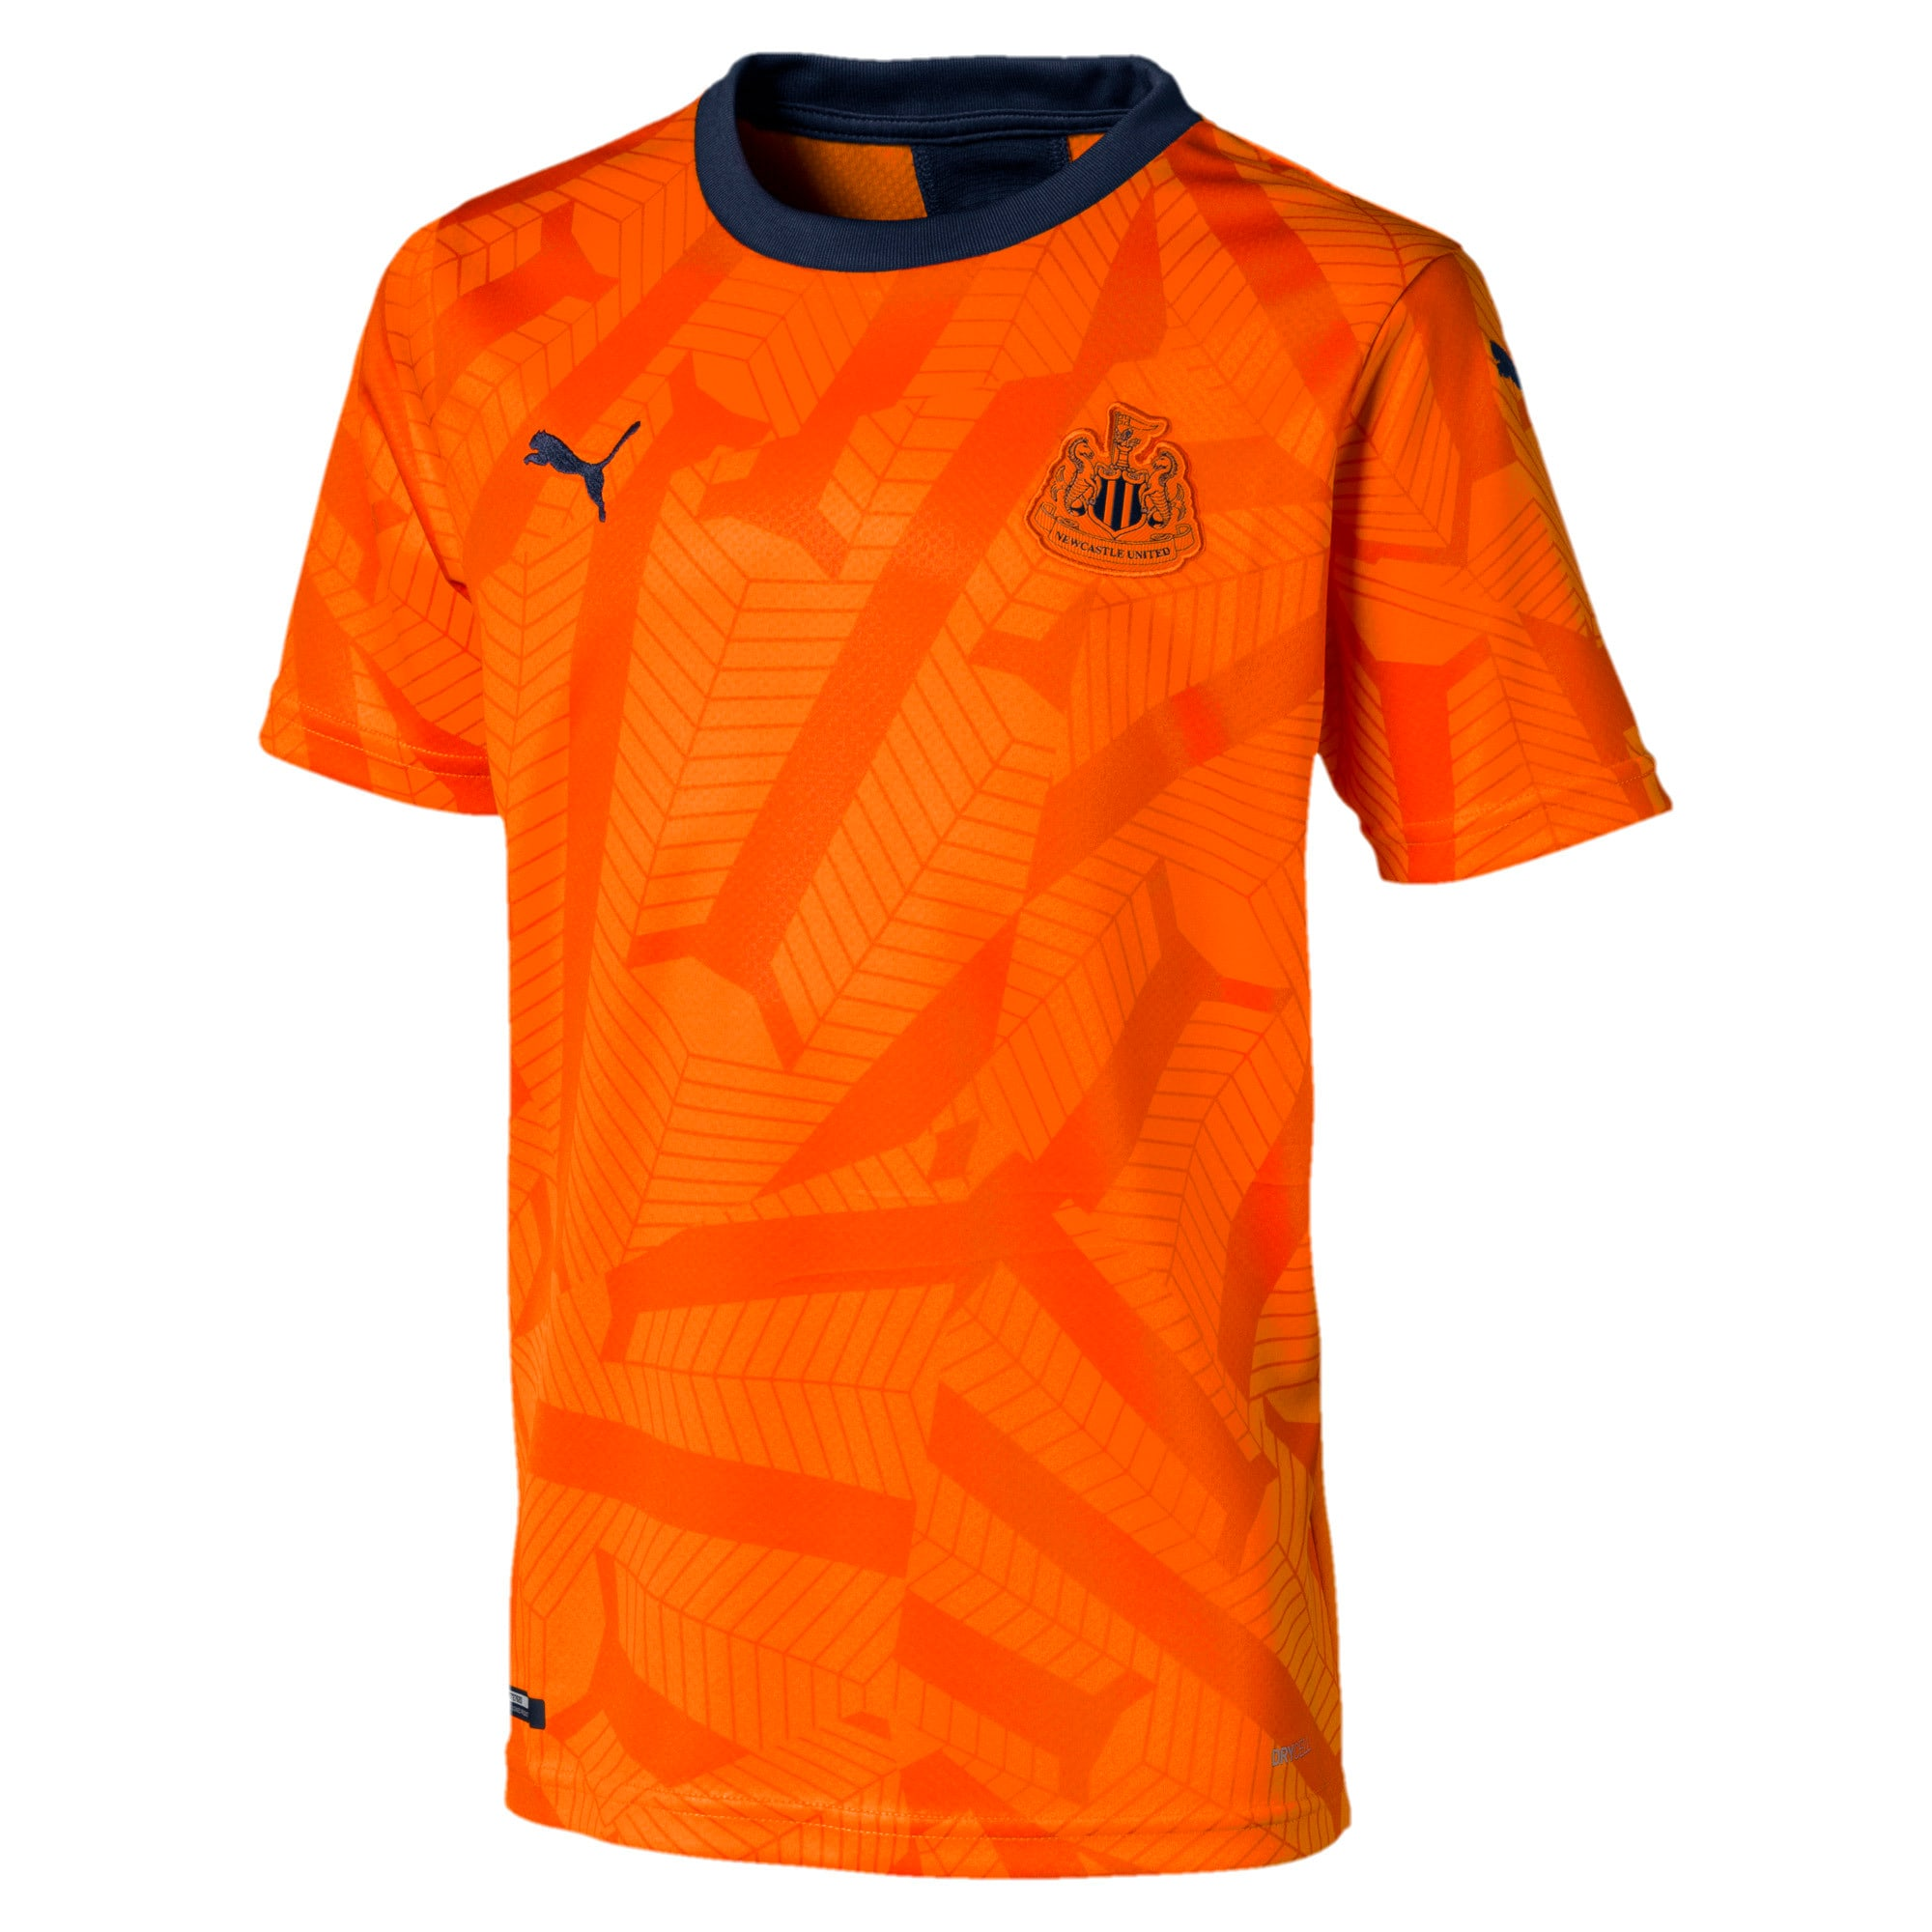 Thumbnail 1 of Newcastle United FC Boys' Third Replica Short Sleeve Jersey, Vibrant Orange-Peacoat, medium